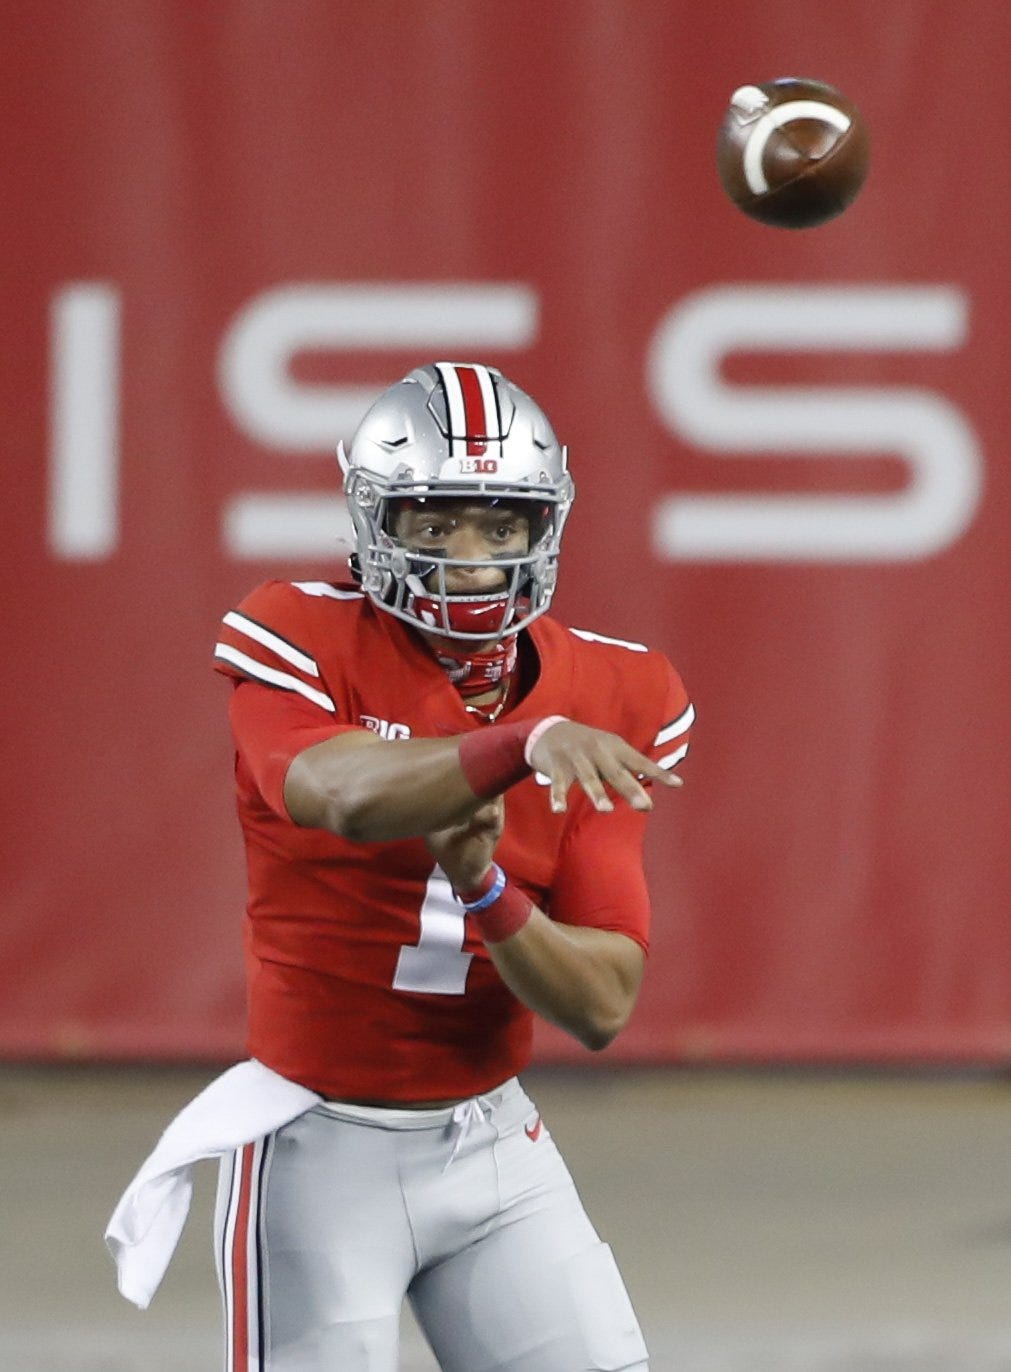 Ohio State Football What You Need To Know About The OSU Indiana Game